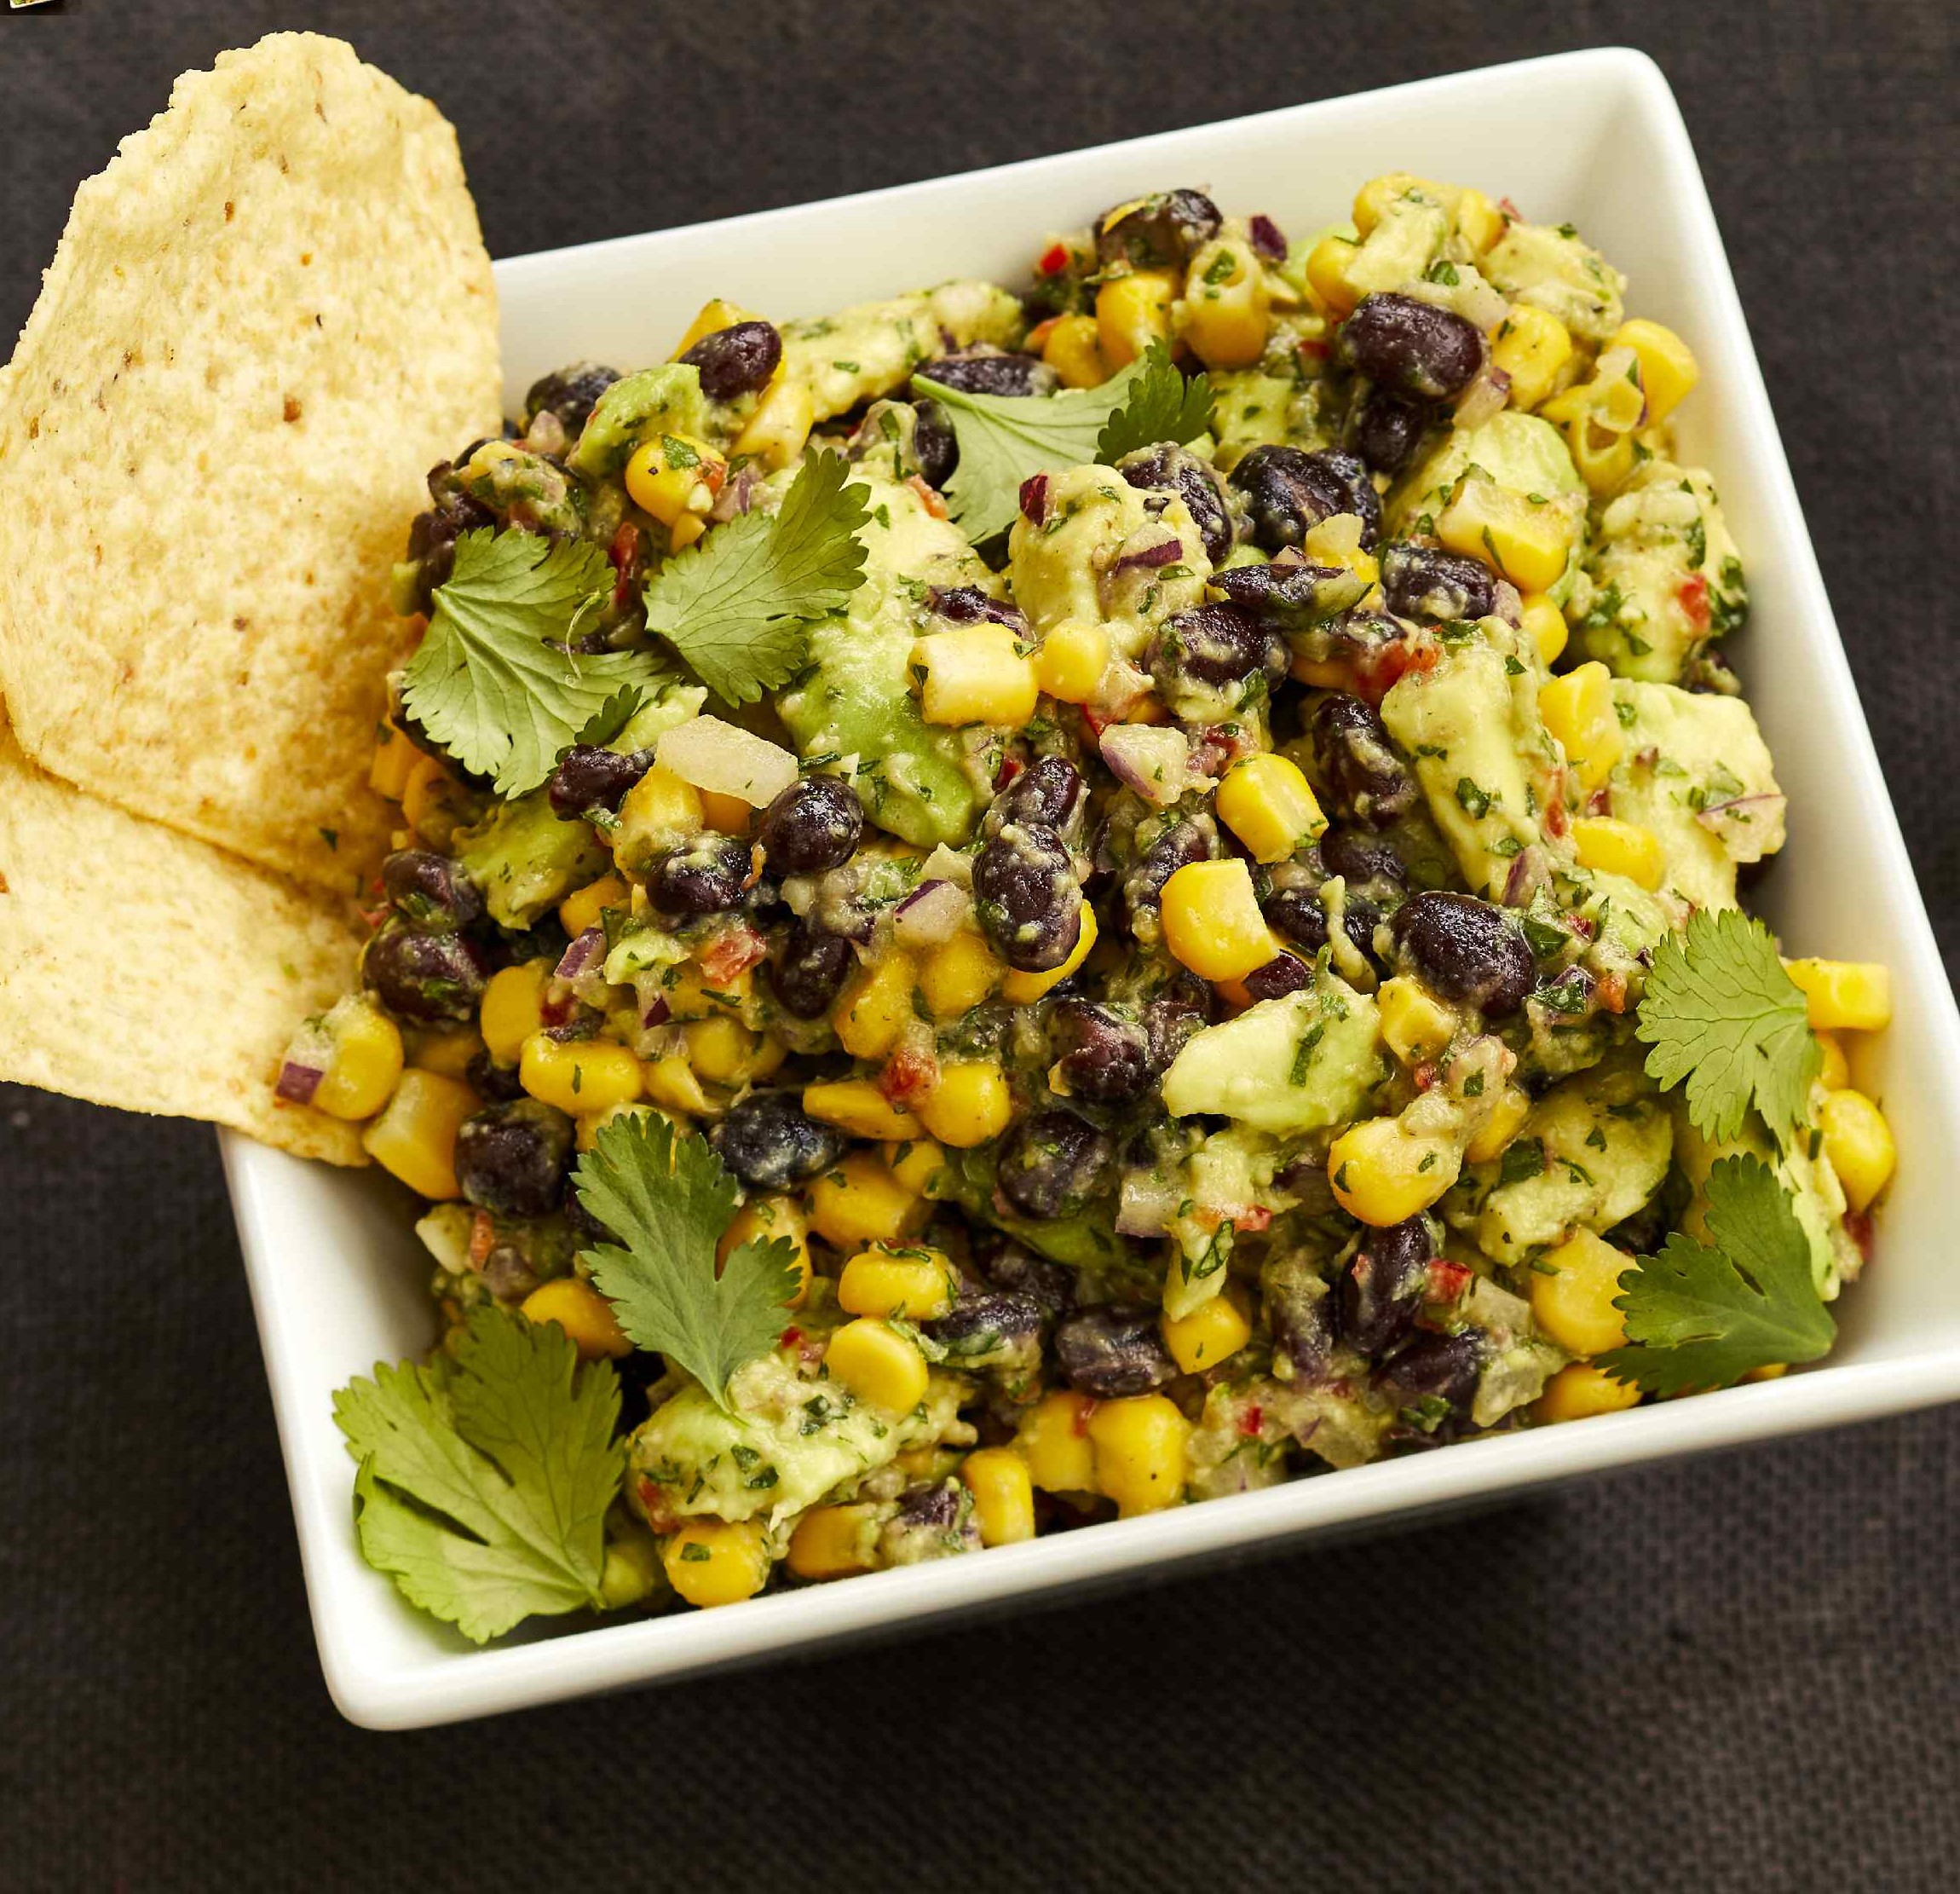 Corn and Black Bean Guacamole Trusted Brands